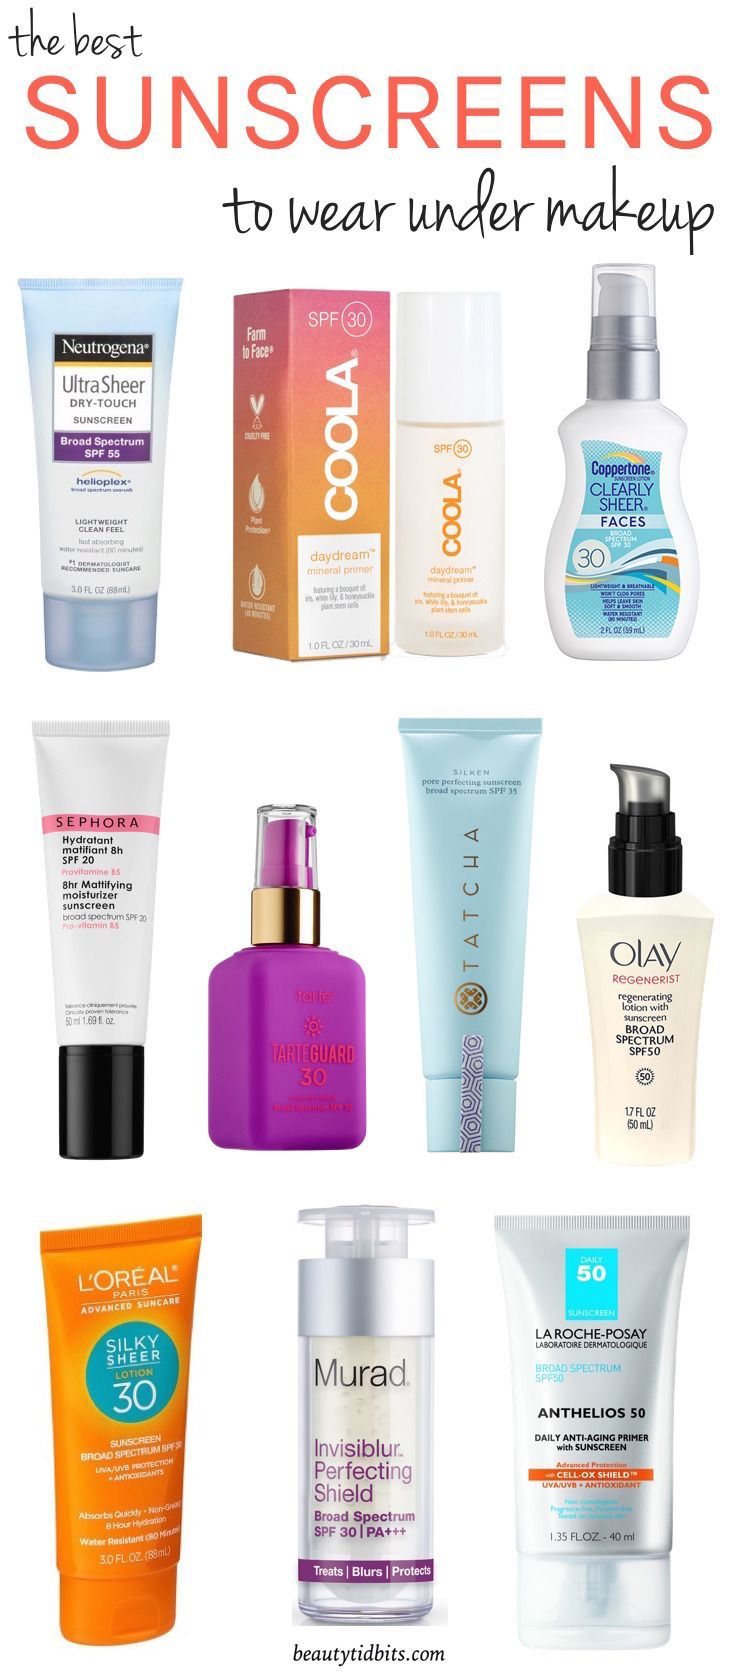 11 Best Makeup and Skin Care Products for Oily Skin